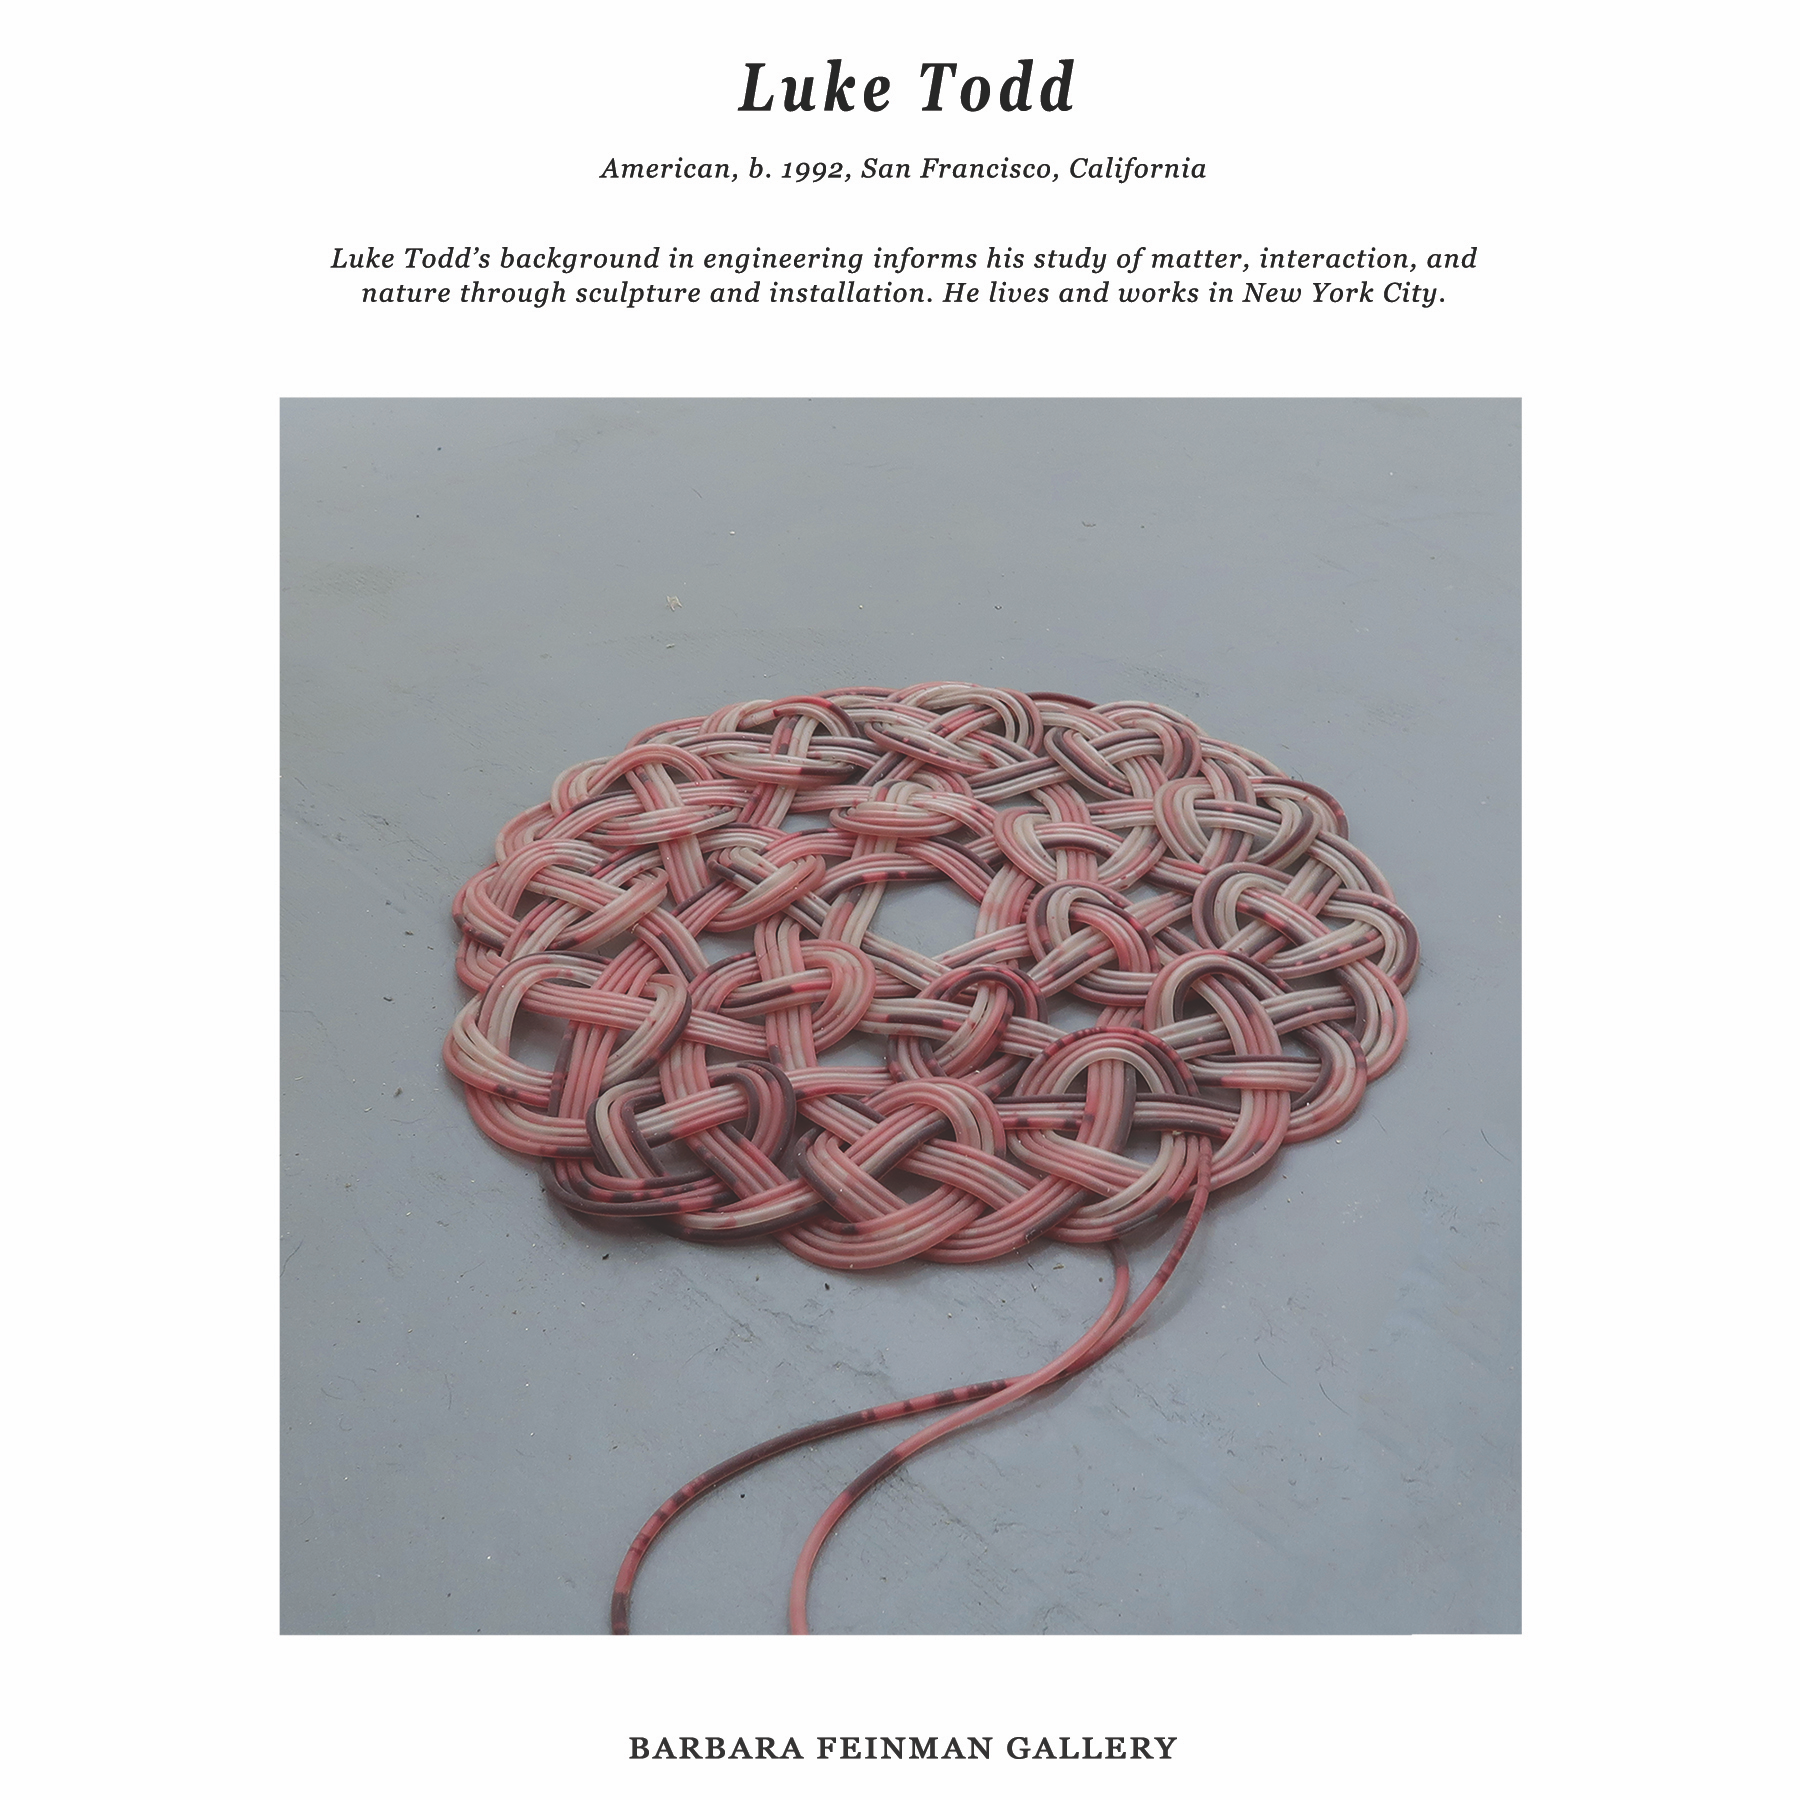 bf presents works Luke Todd.png